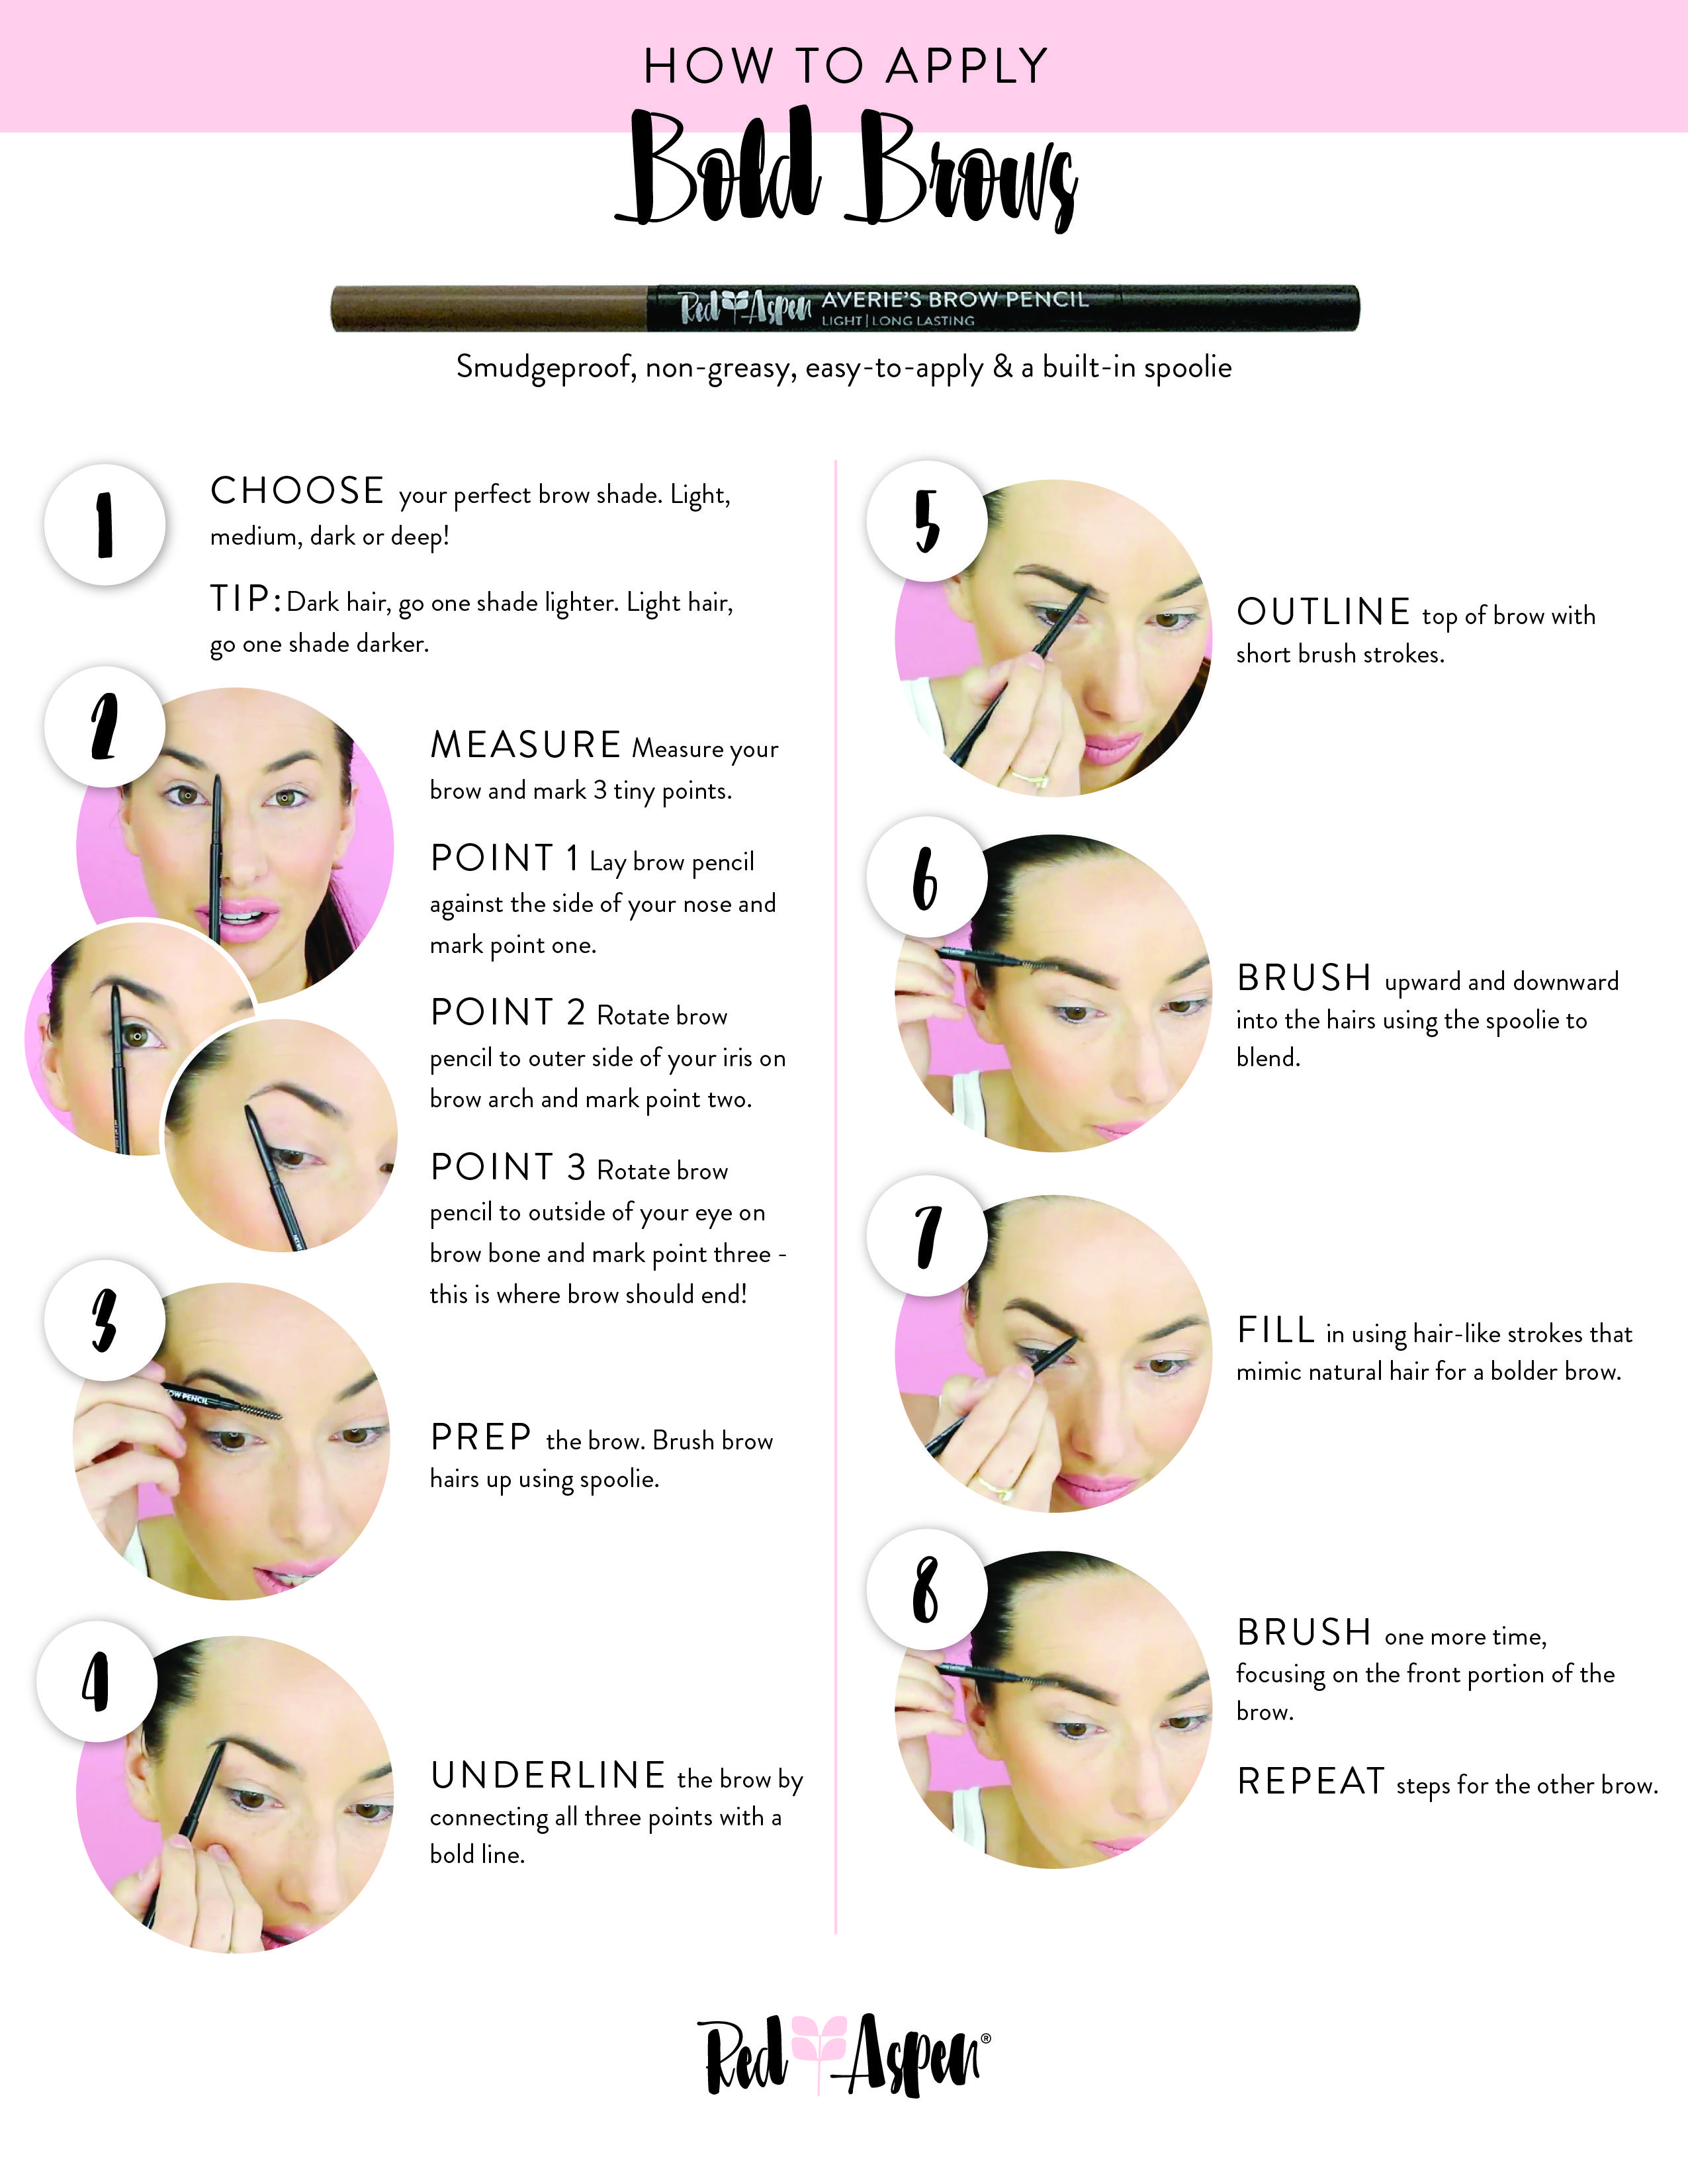 e0cd83c4ff4 The perfect Bold Brow tutorial. This pencil is great for simple hair like  strokes with its dual ended small pencil tip and spoolie. Click to shop!